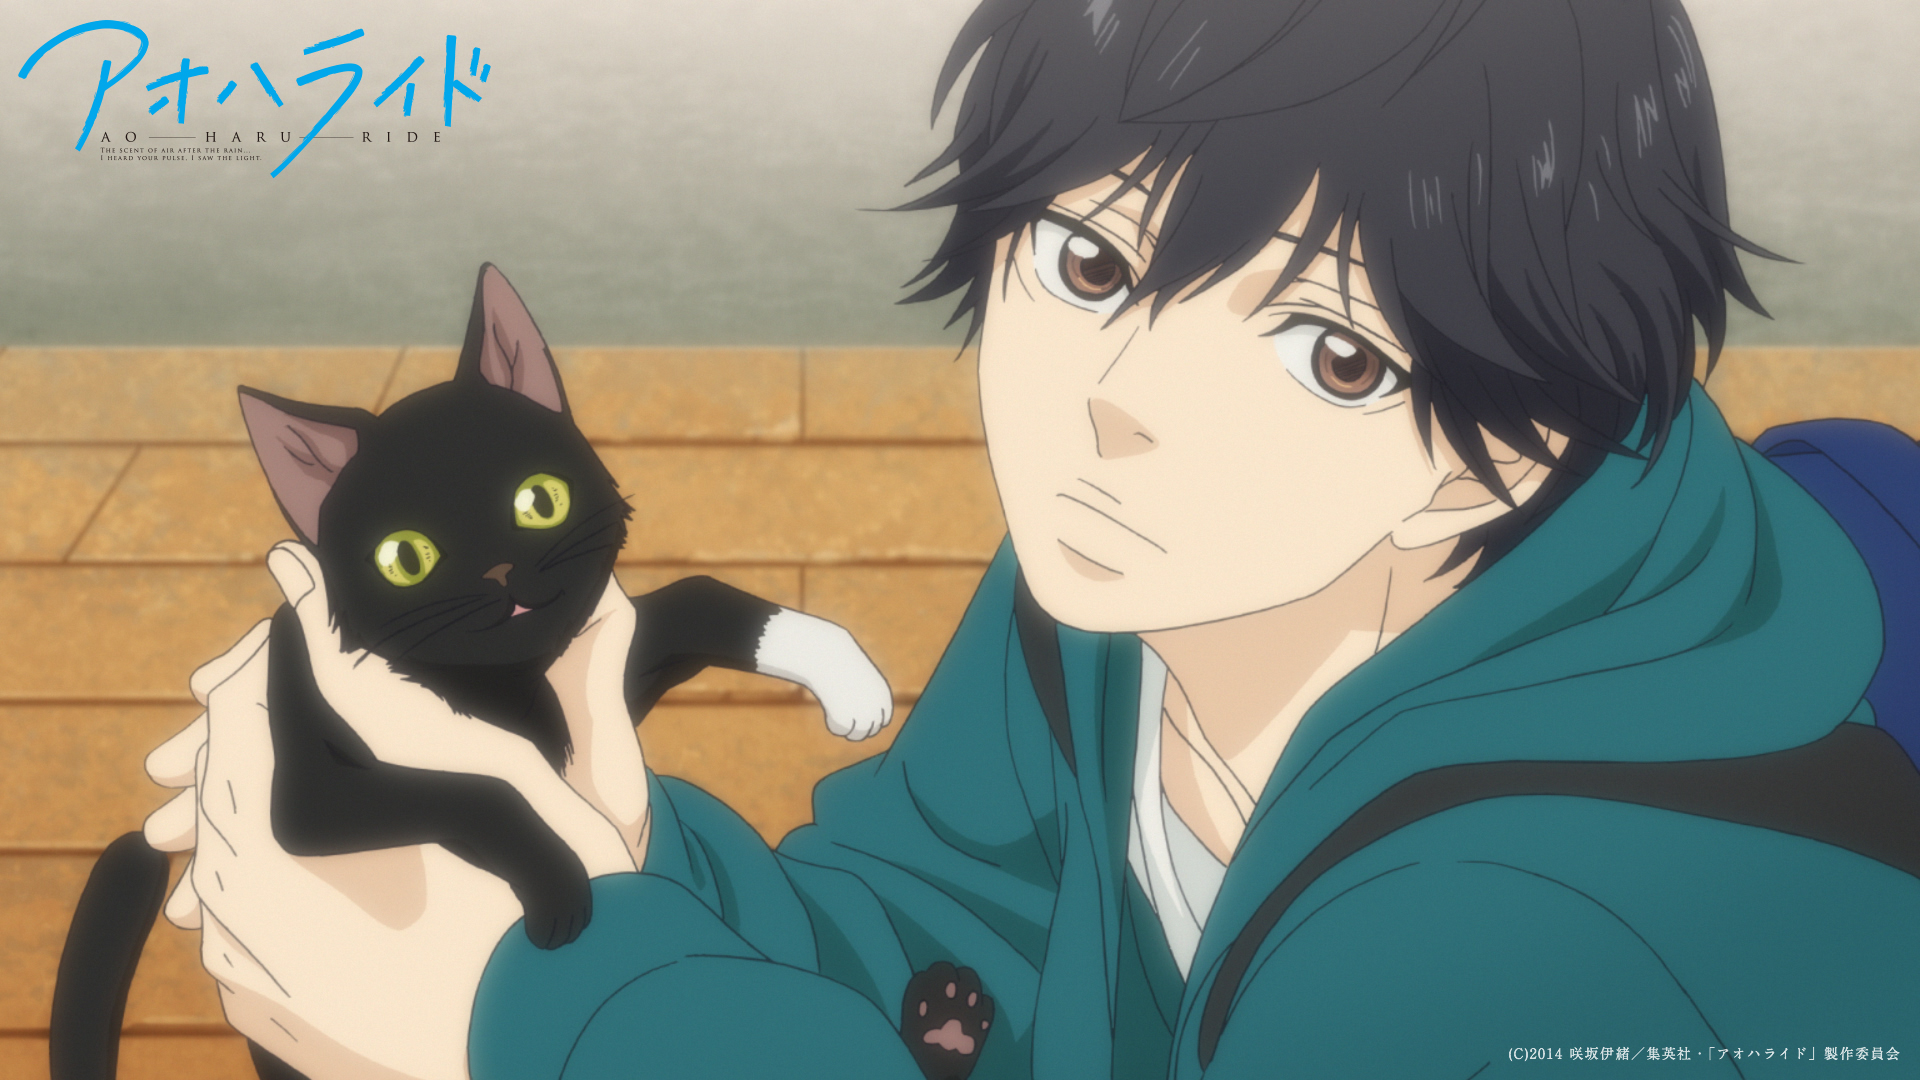 Anime - Ao Haru Ride Wallpaper